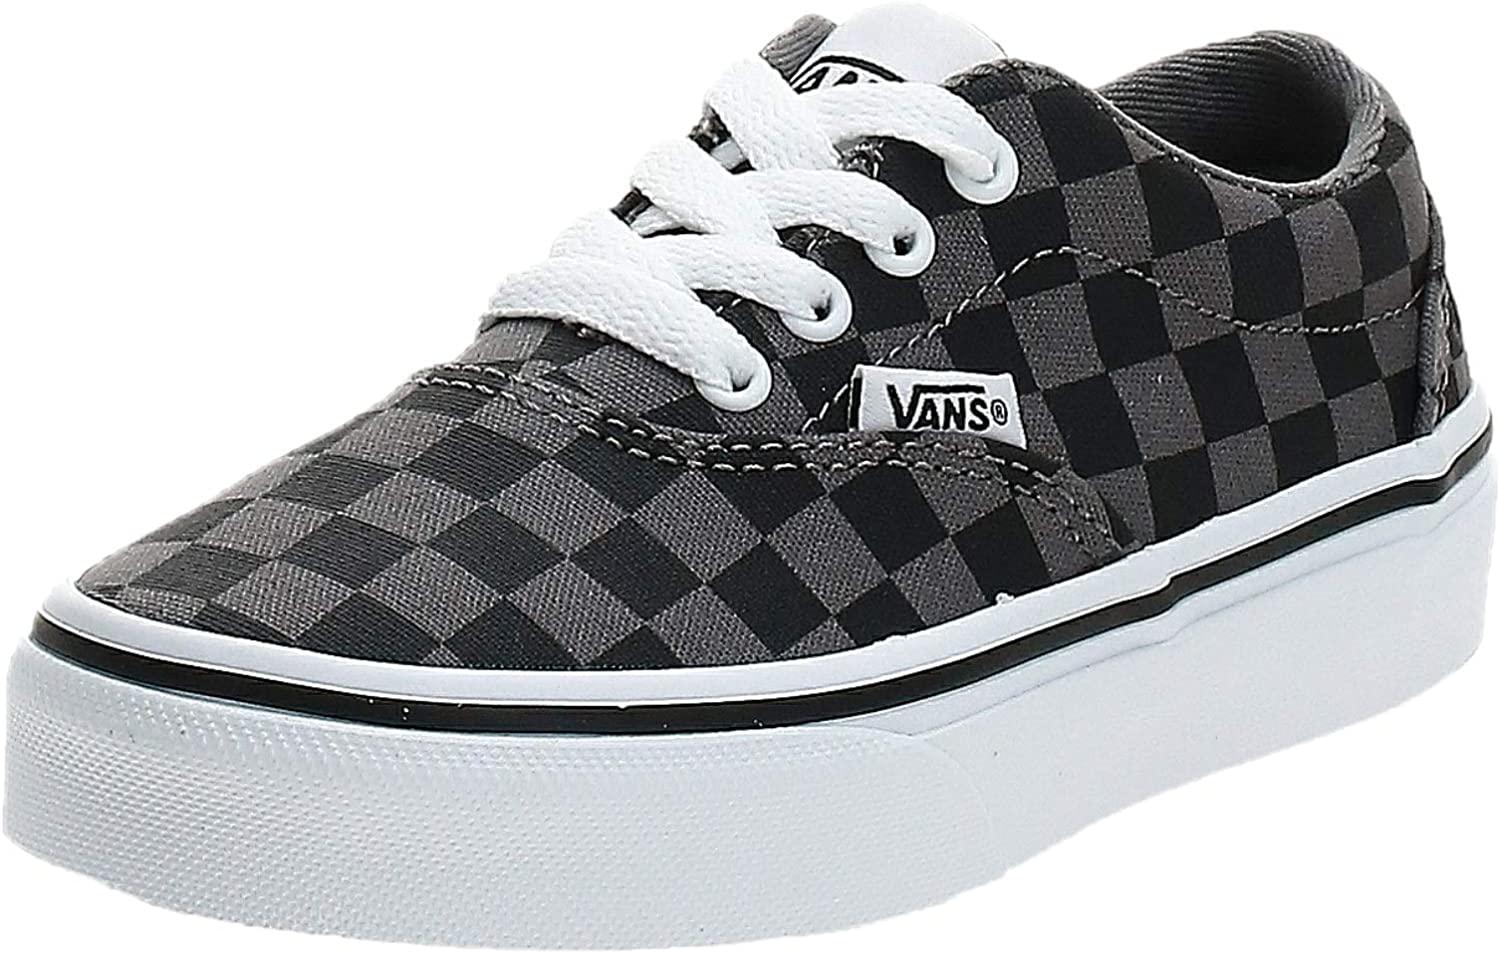 Vans Boy's Doheny Trainers Max 63% Now on sale OFF Pew Sneaker Black Checkerboard